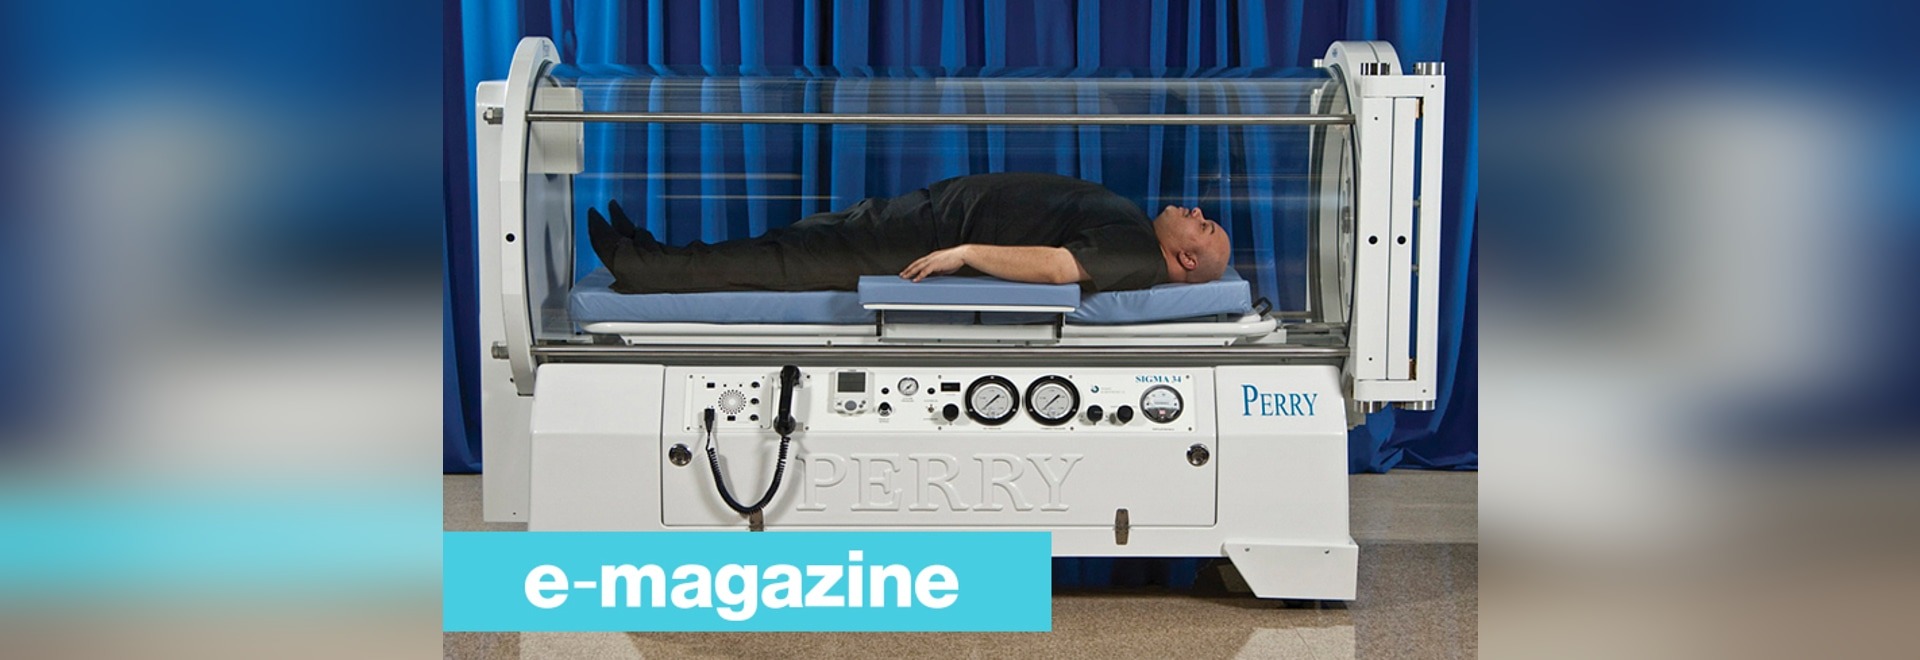 A Hyperbaric Chamber for Patients up to 320 Kg